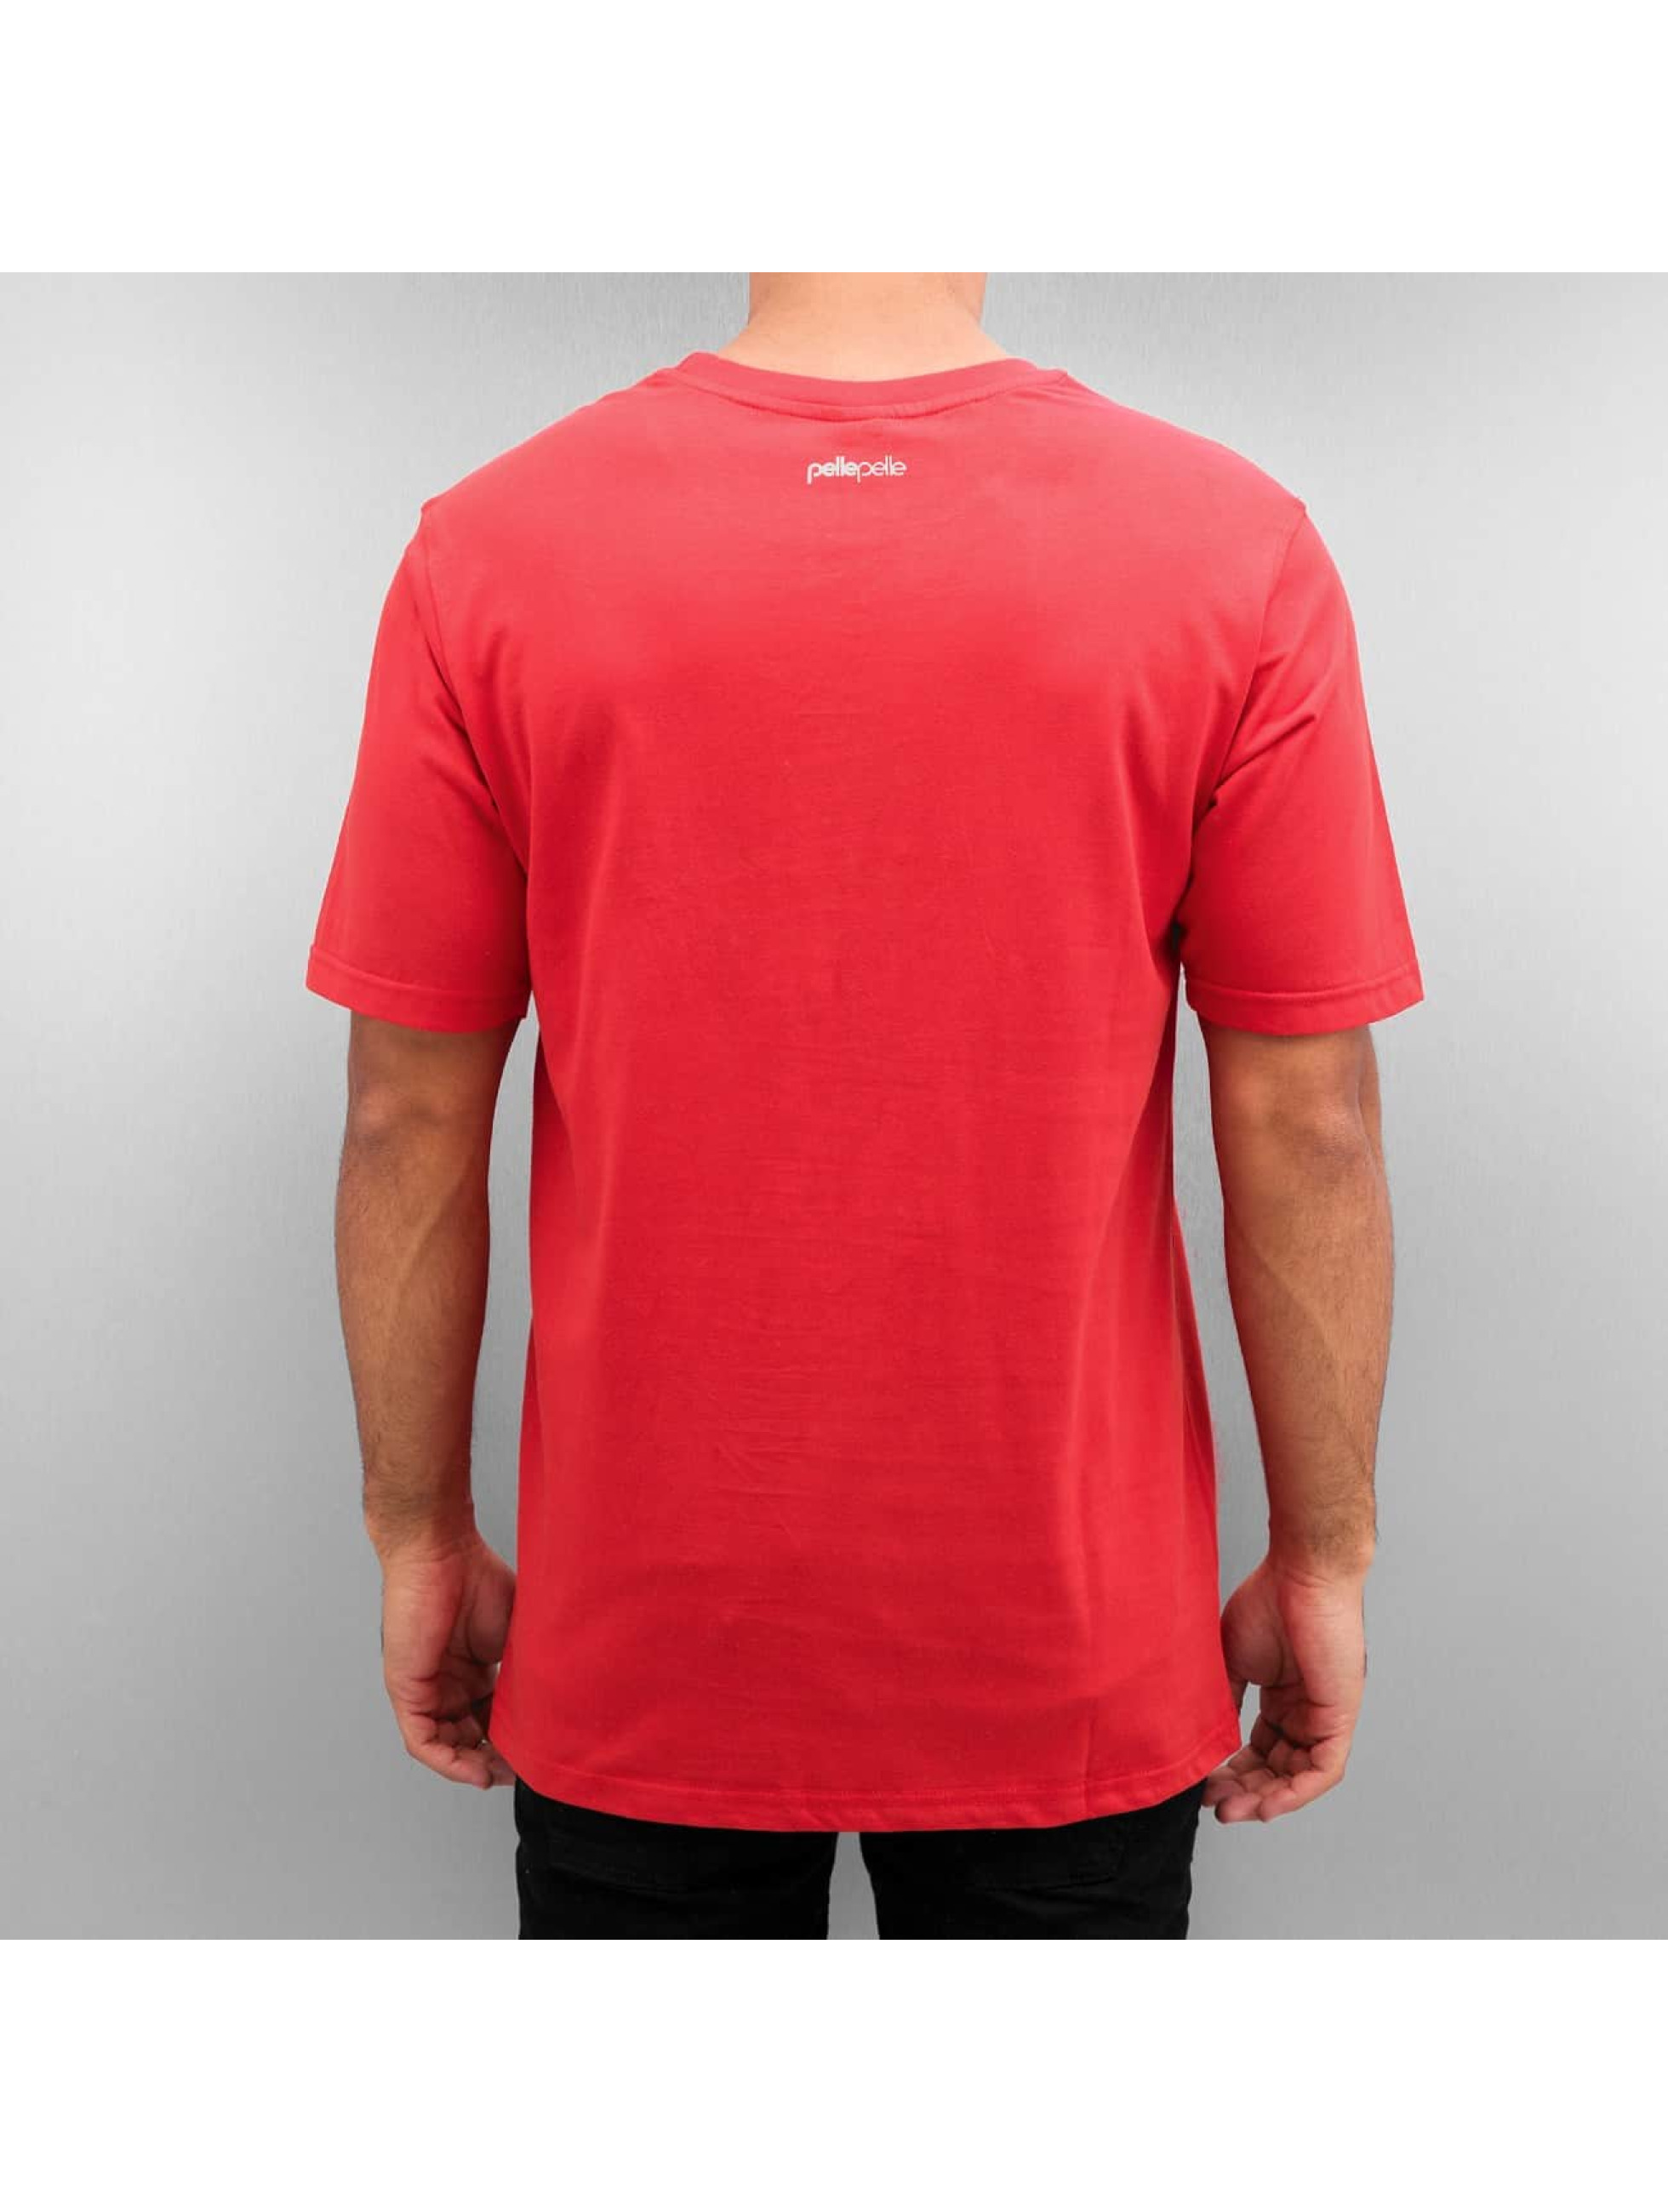 Pelle Pelle T-Shirt 50/50 Dark Maze red